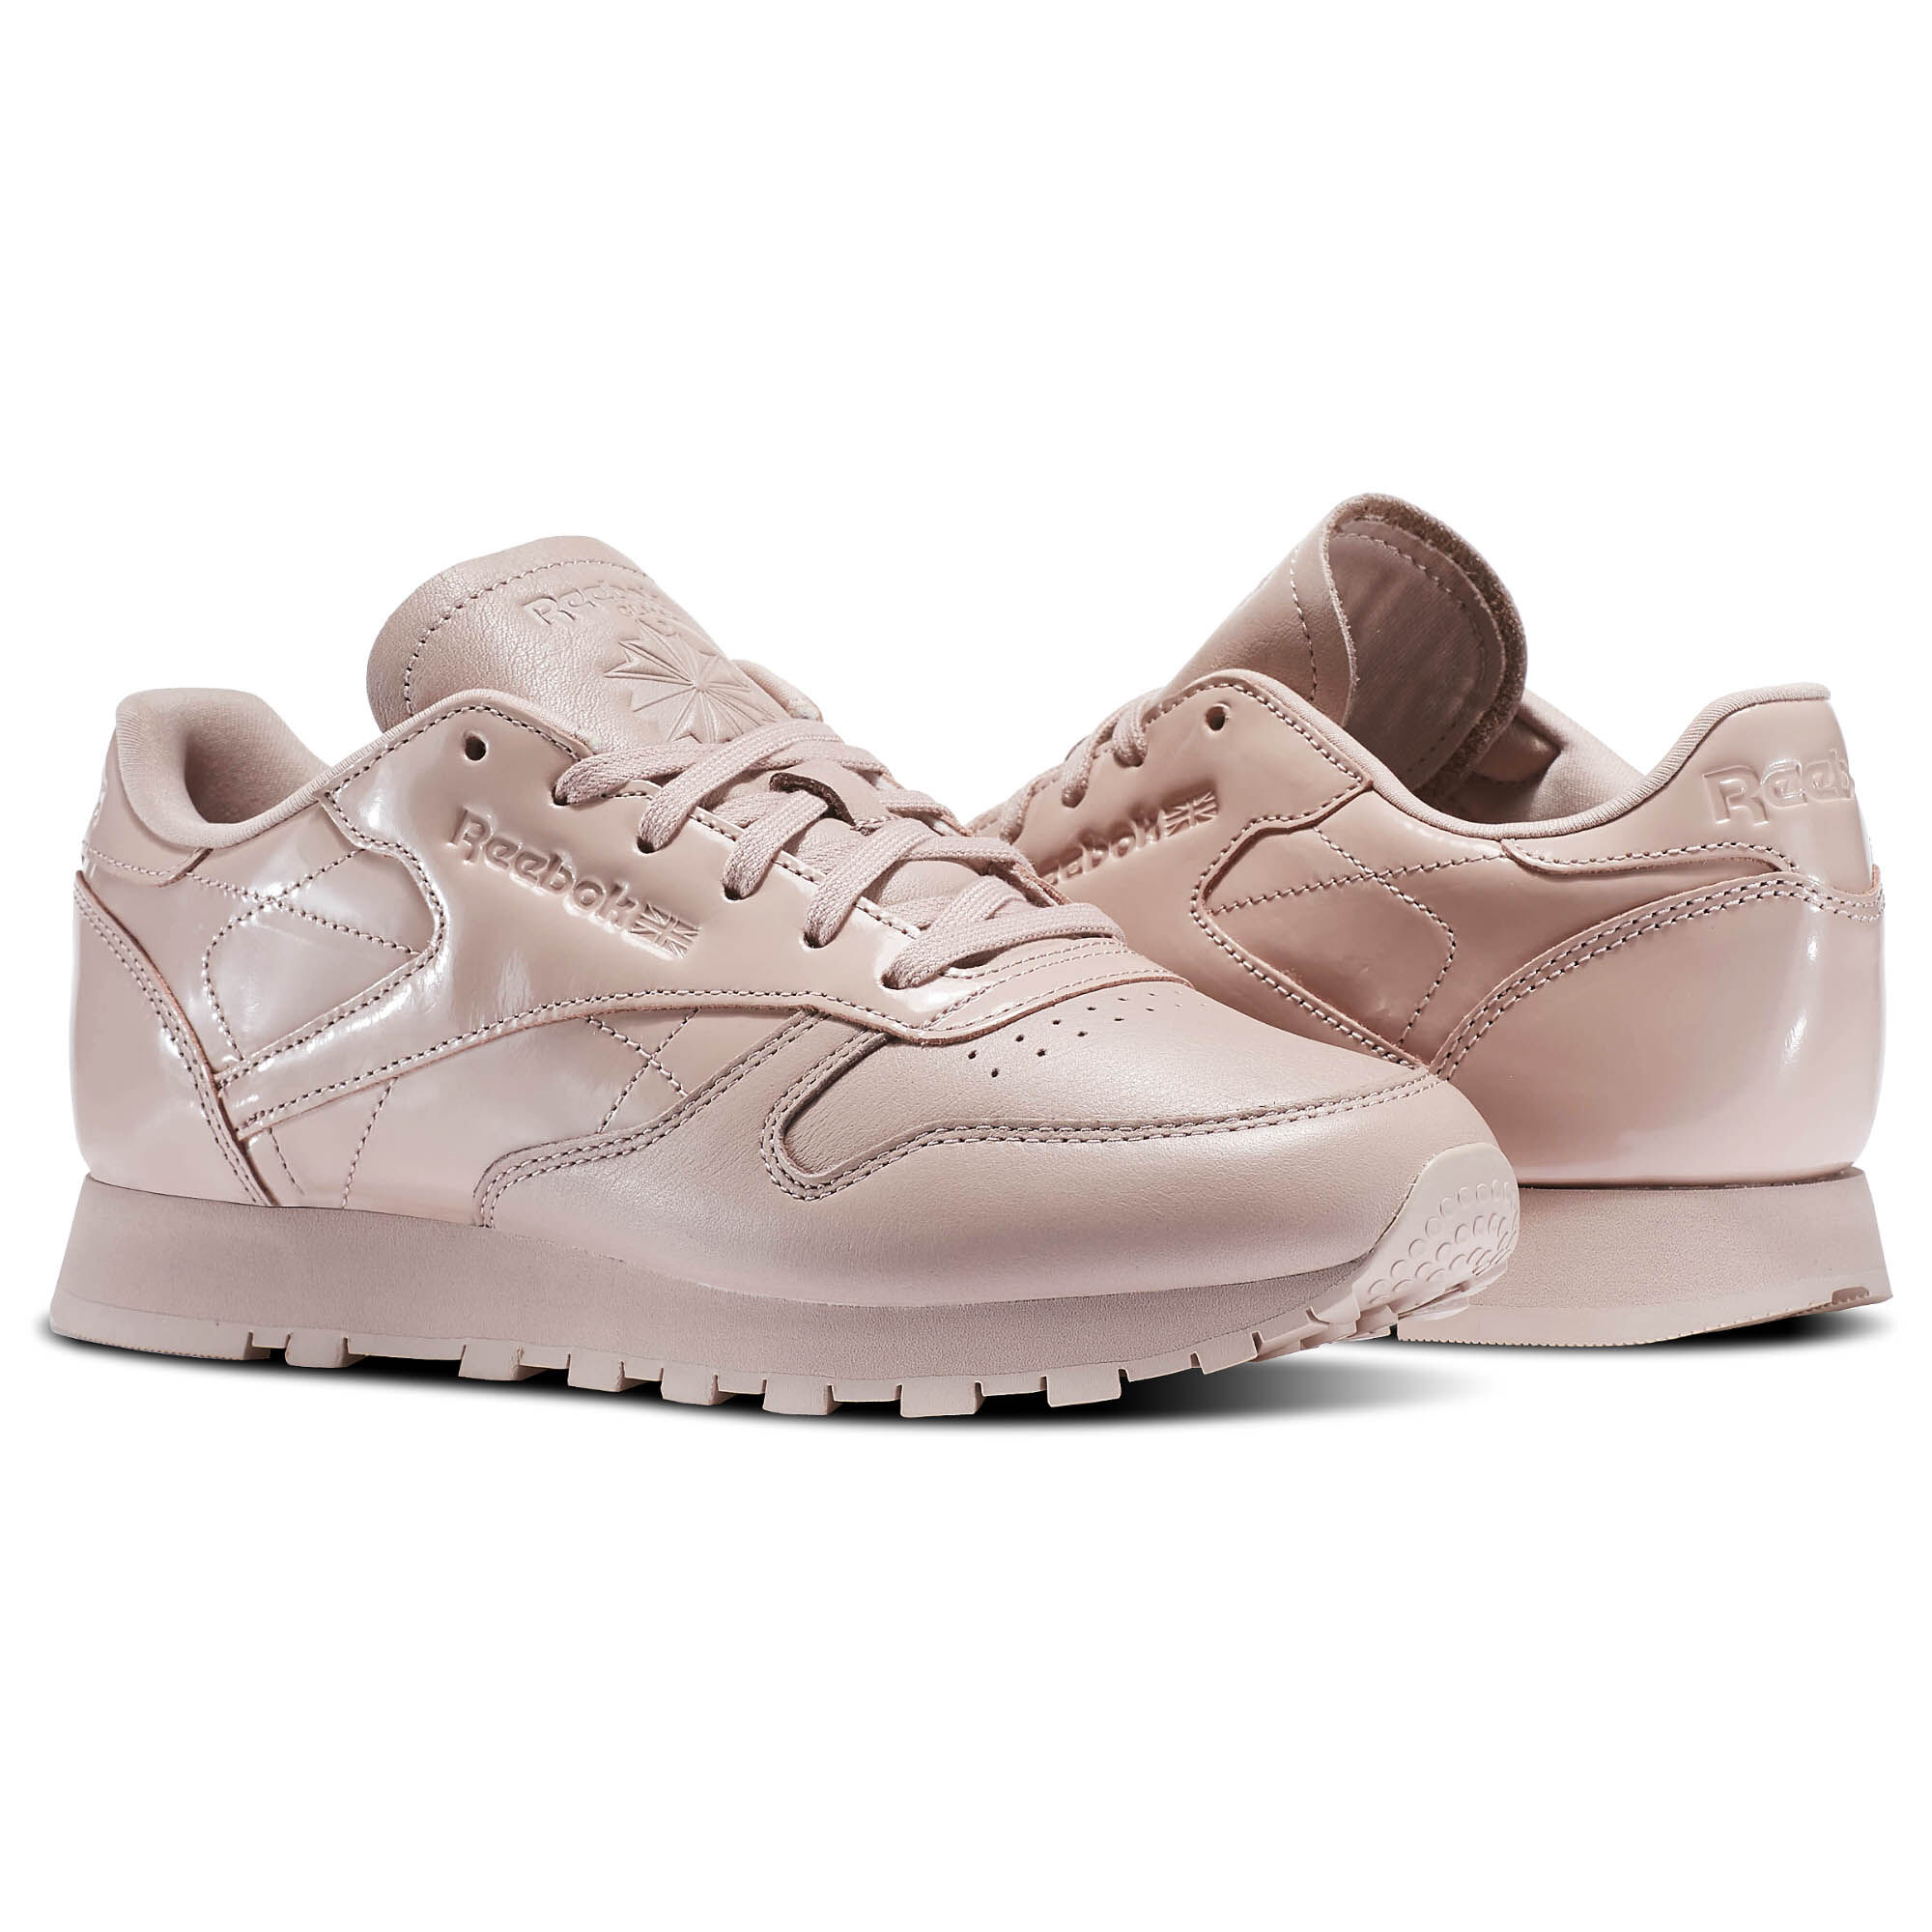 Reebok - Classic Leather IL Shell Pink BS6584